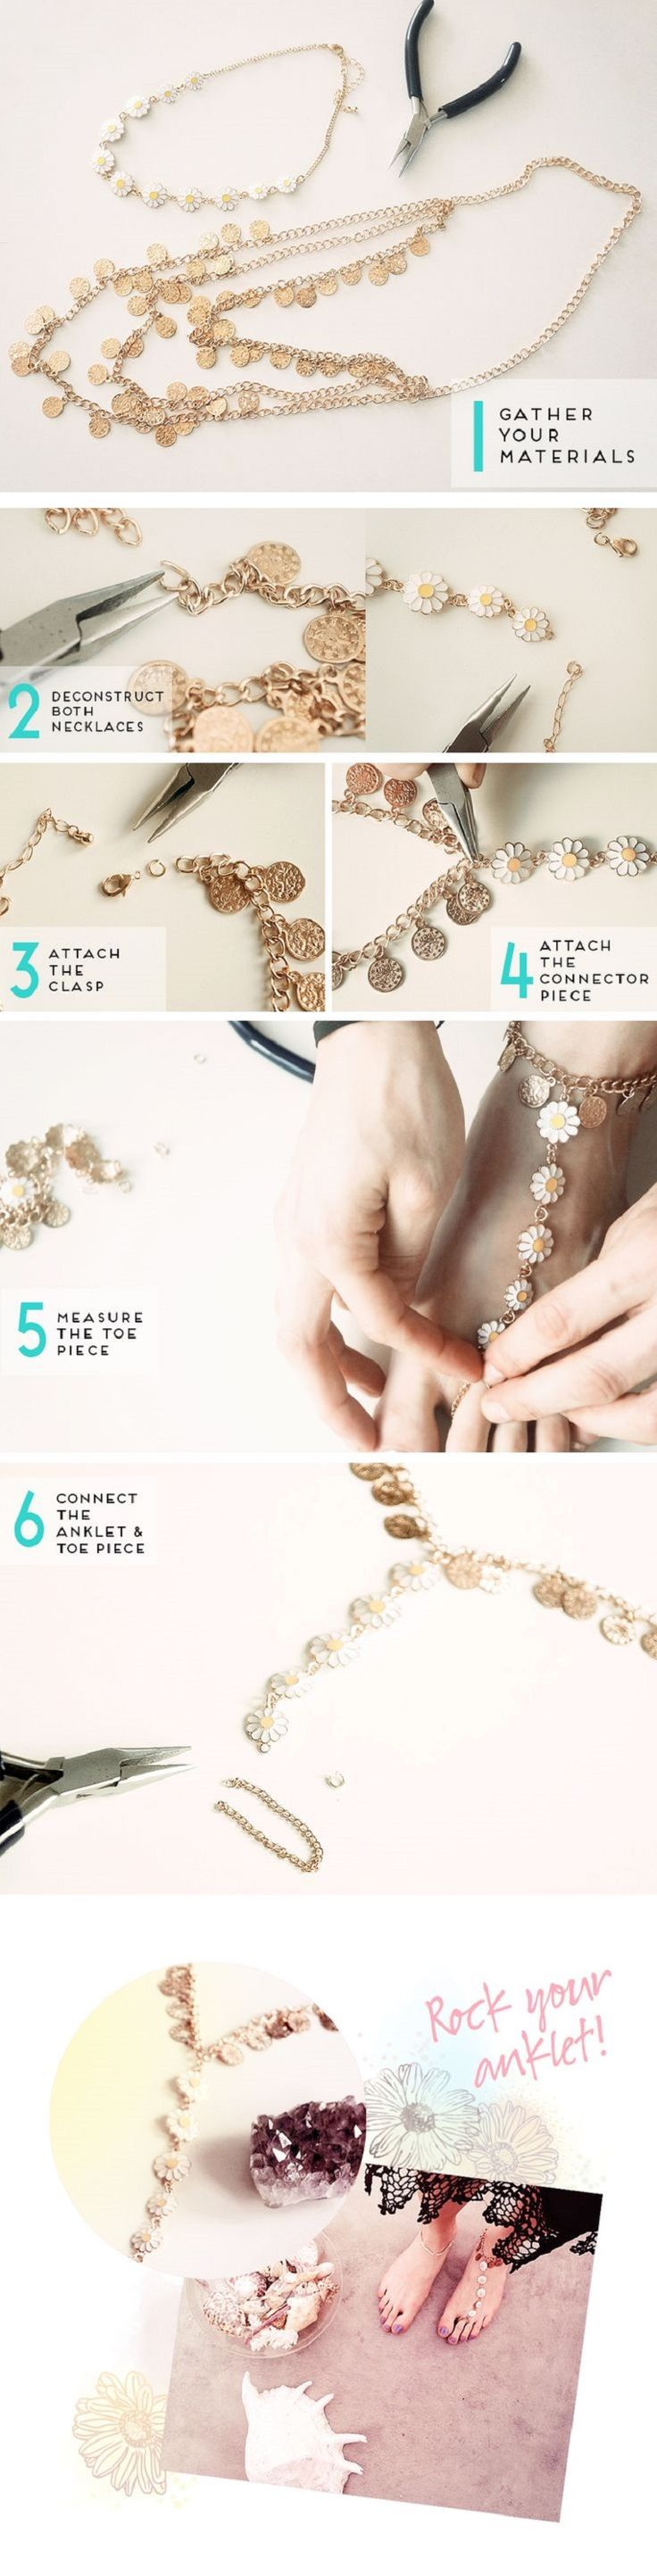 DIY Wild & Free Daisy Chain Anklet Supplies - 16 Hippy DIY Tutorials for All Boho-Chic Princesses | GleamItUp